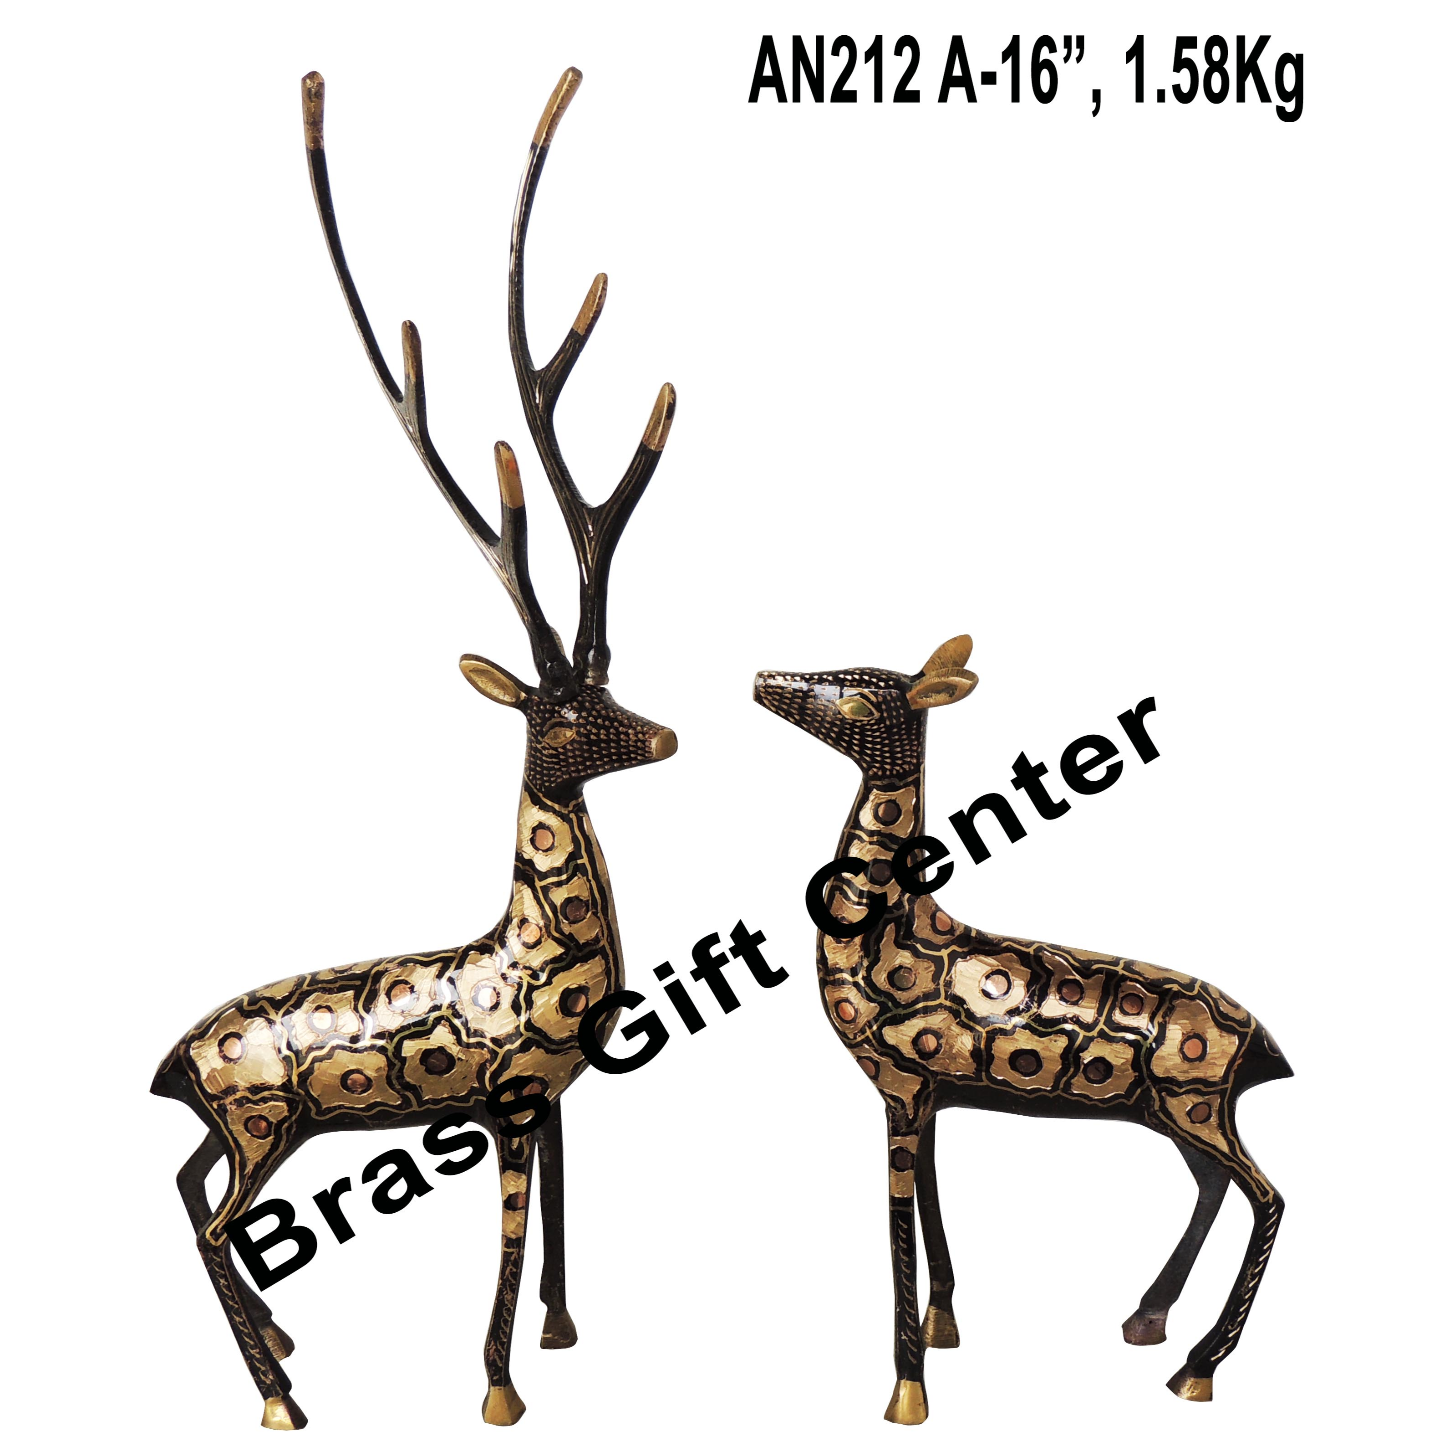 Brass Showpiece Deer Pair Statue With Black Finish, Height 16 Inch (AN212 A)